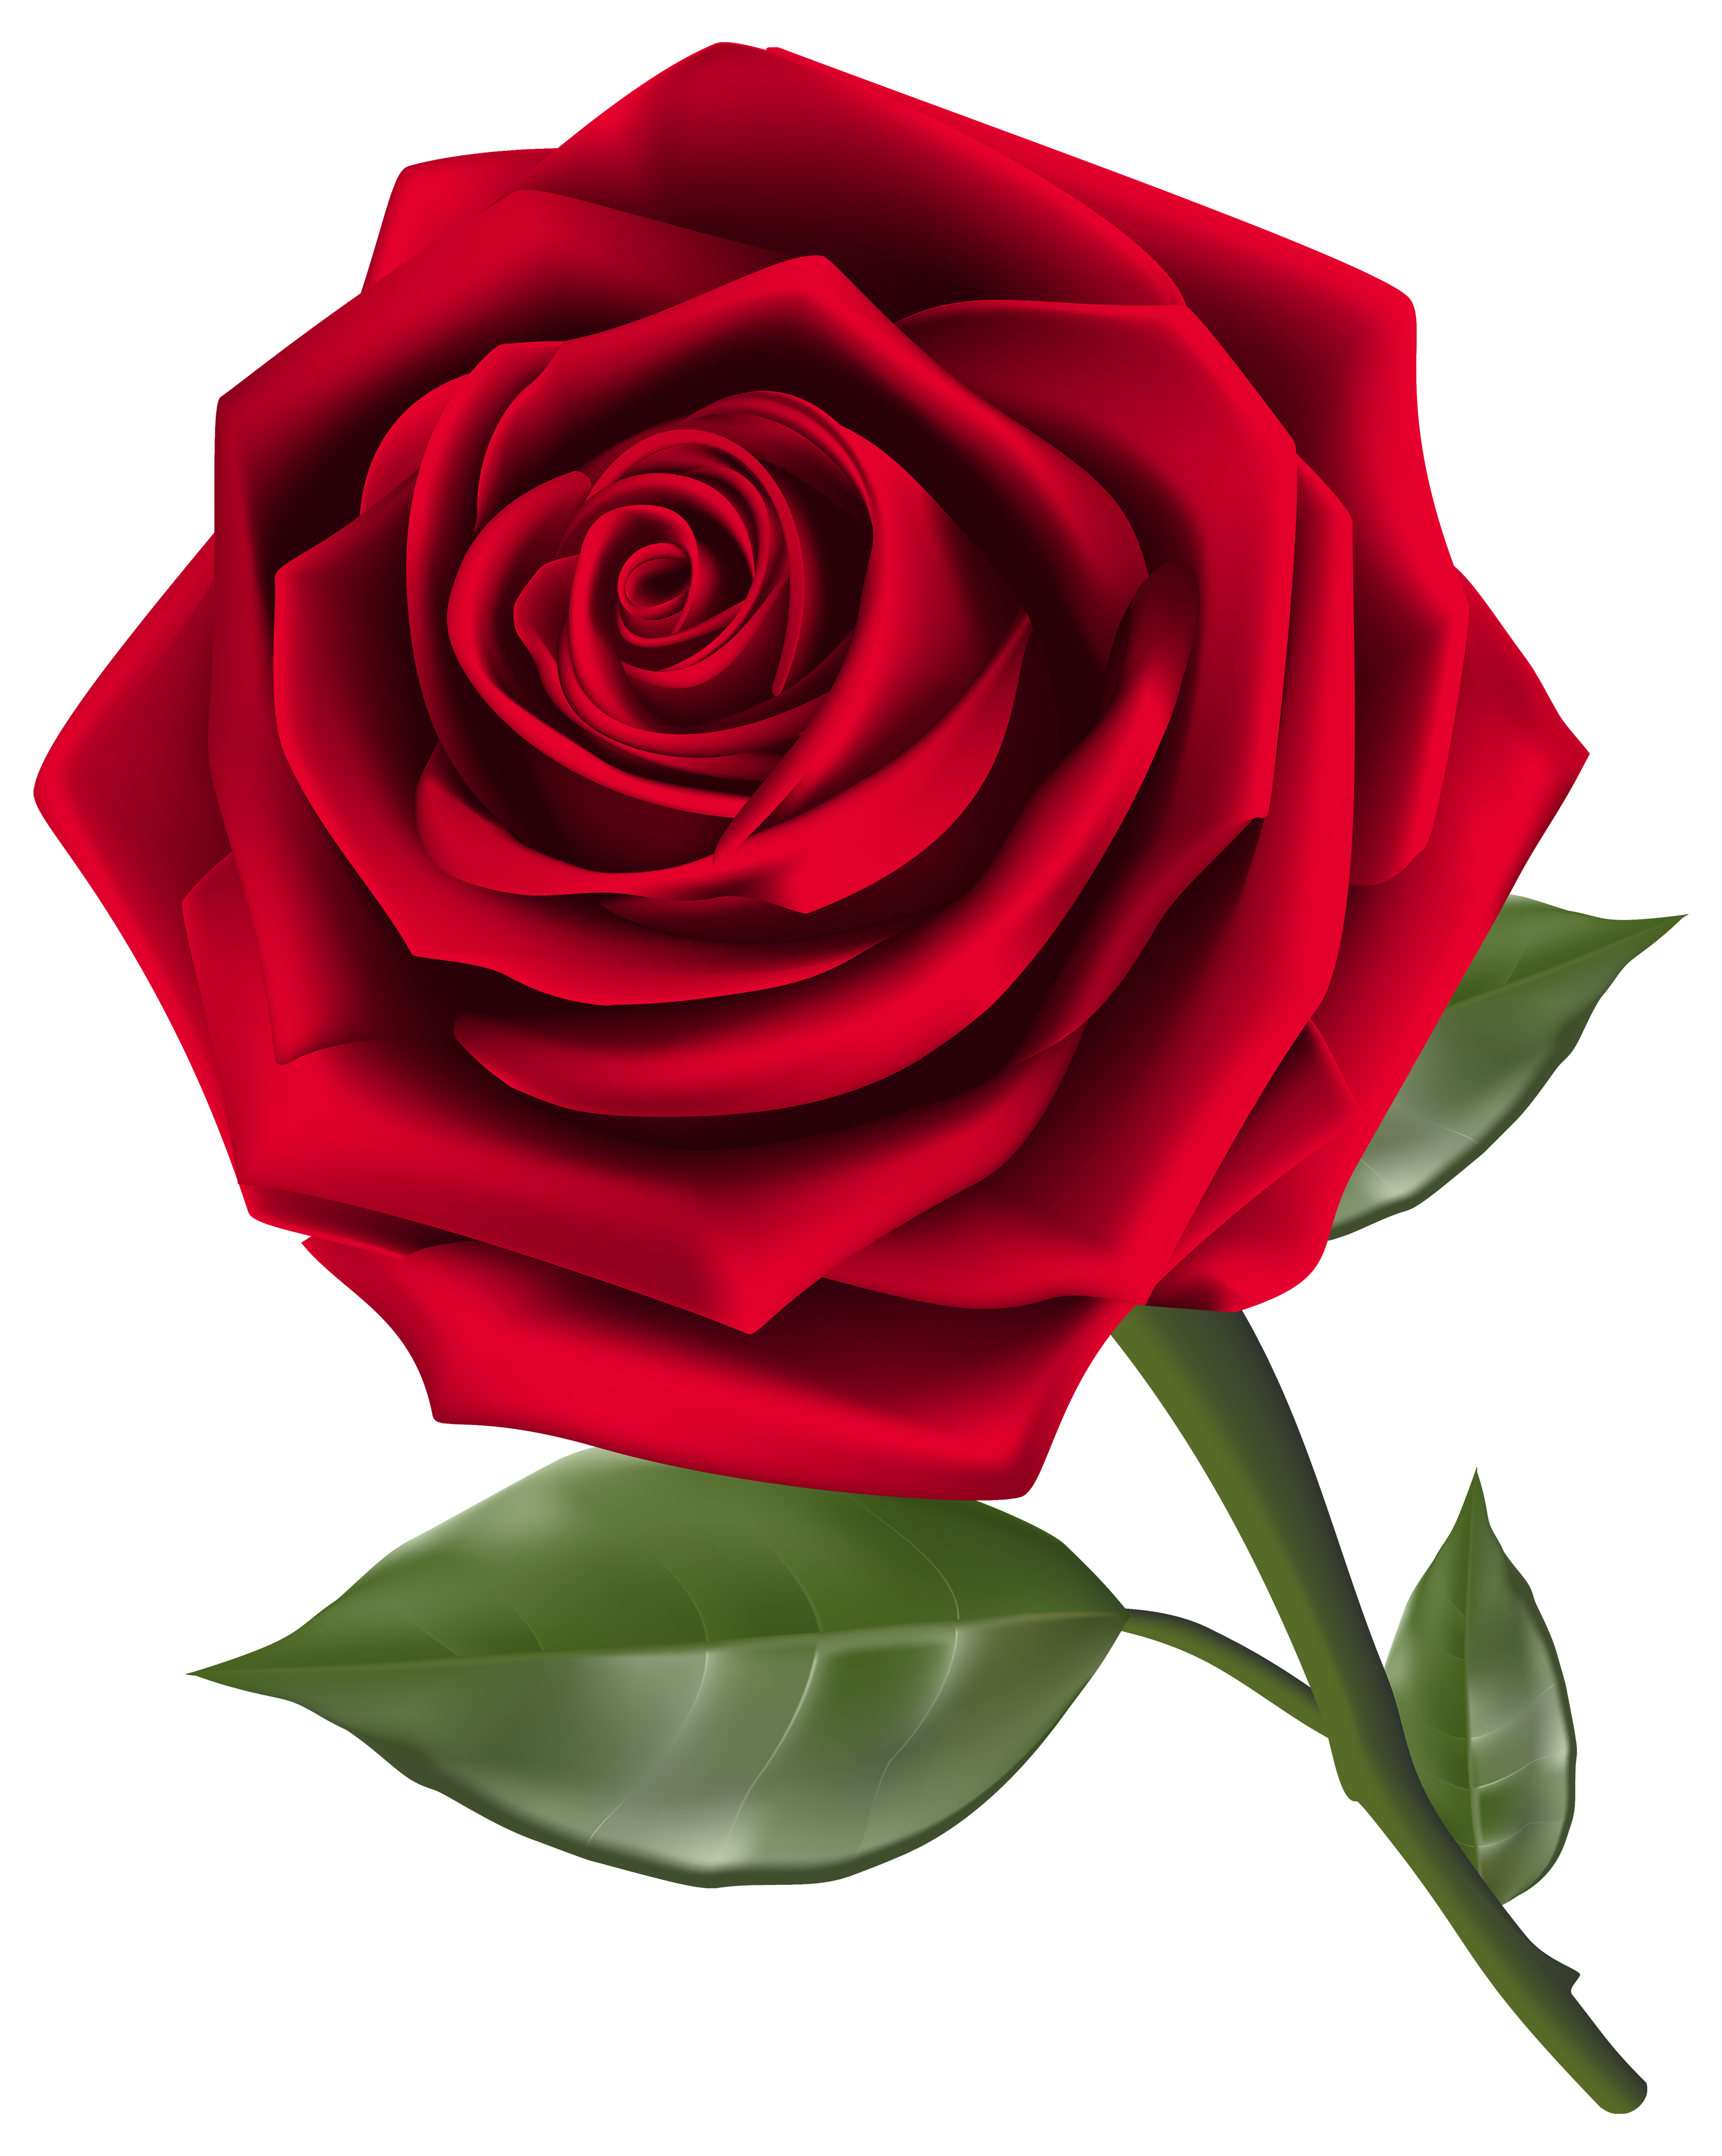 Beautiful Red Rose Png Clipart Best Web Clipart In 2020 Rose Flower Png Rose Clipart Red Rose Png